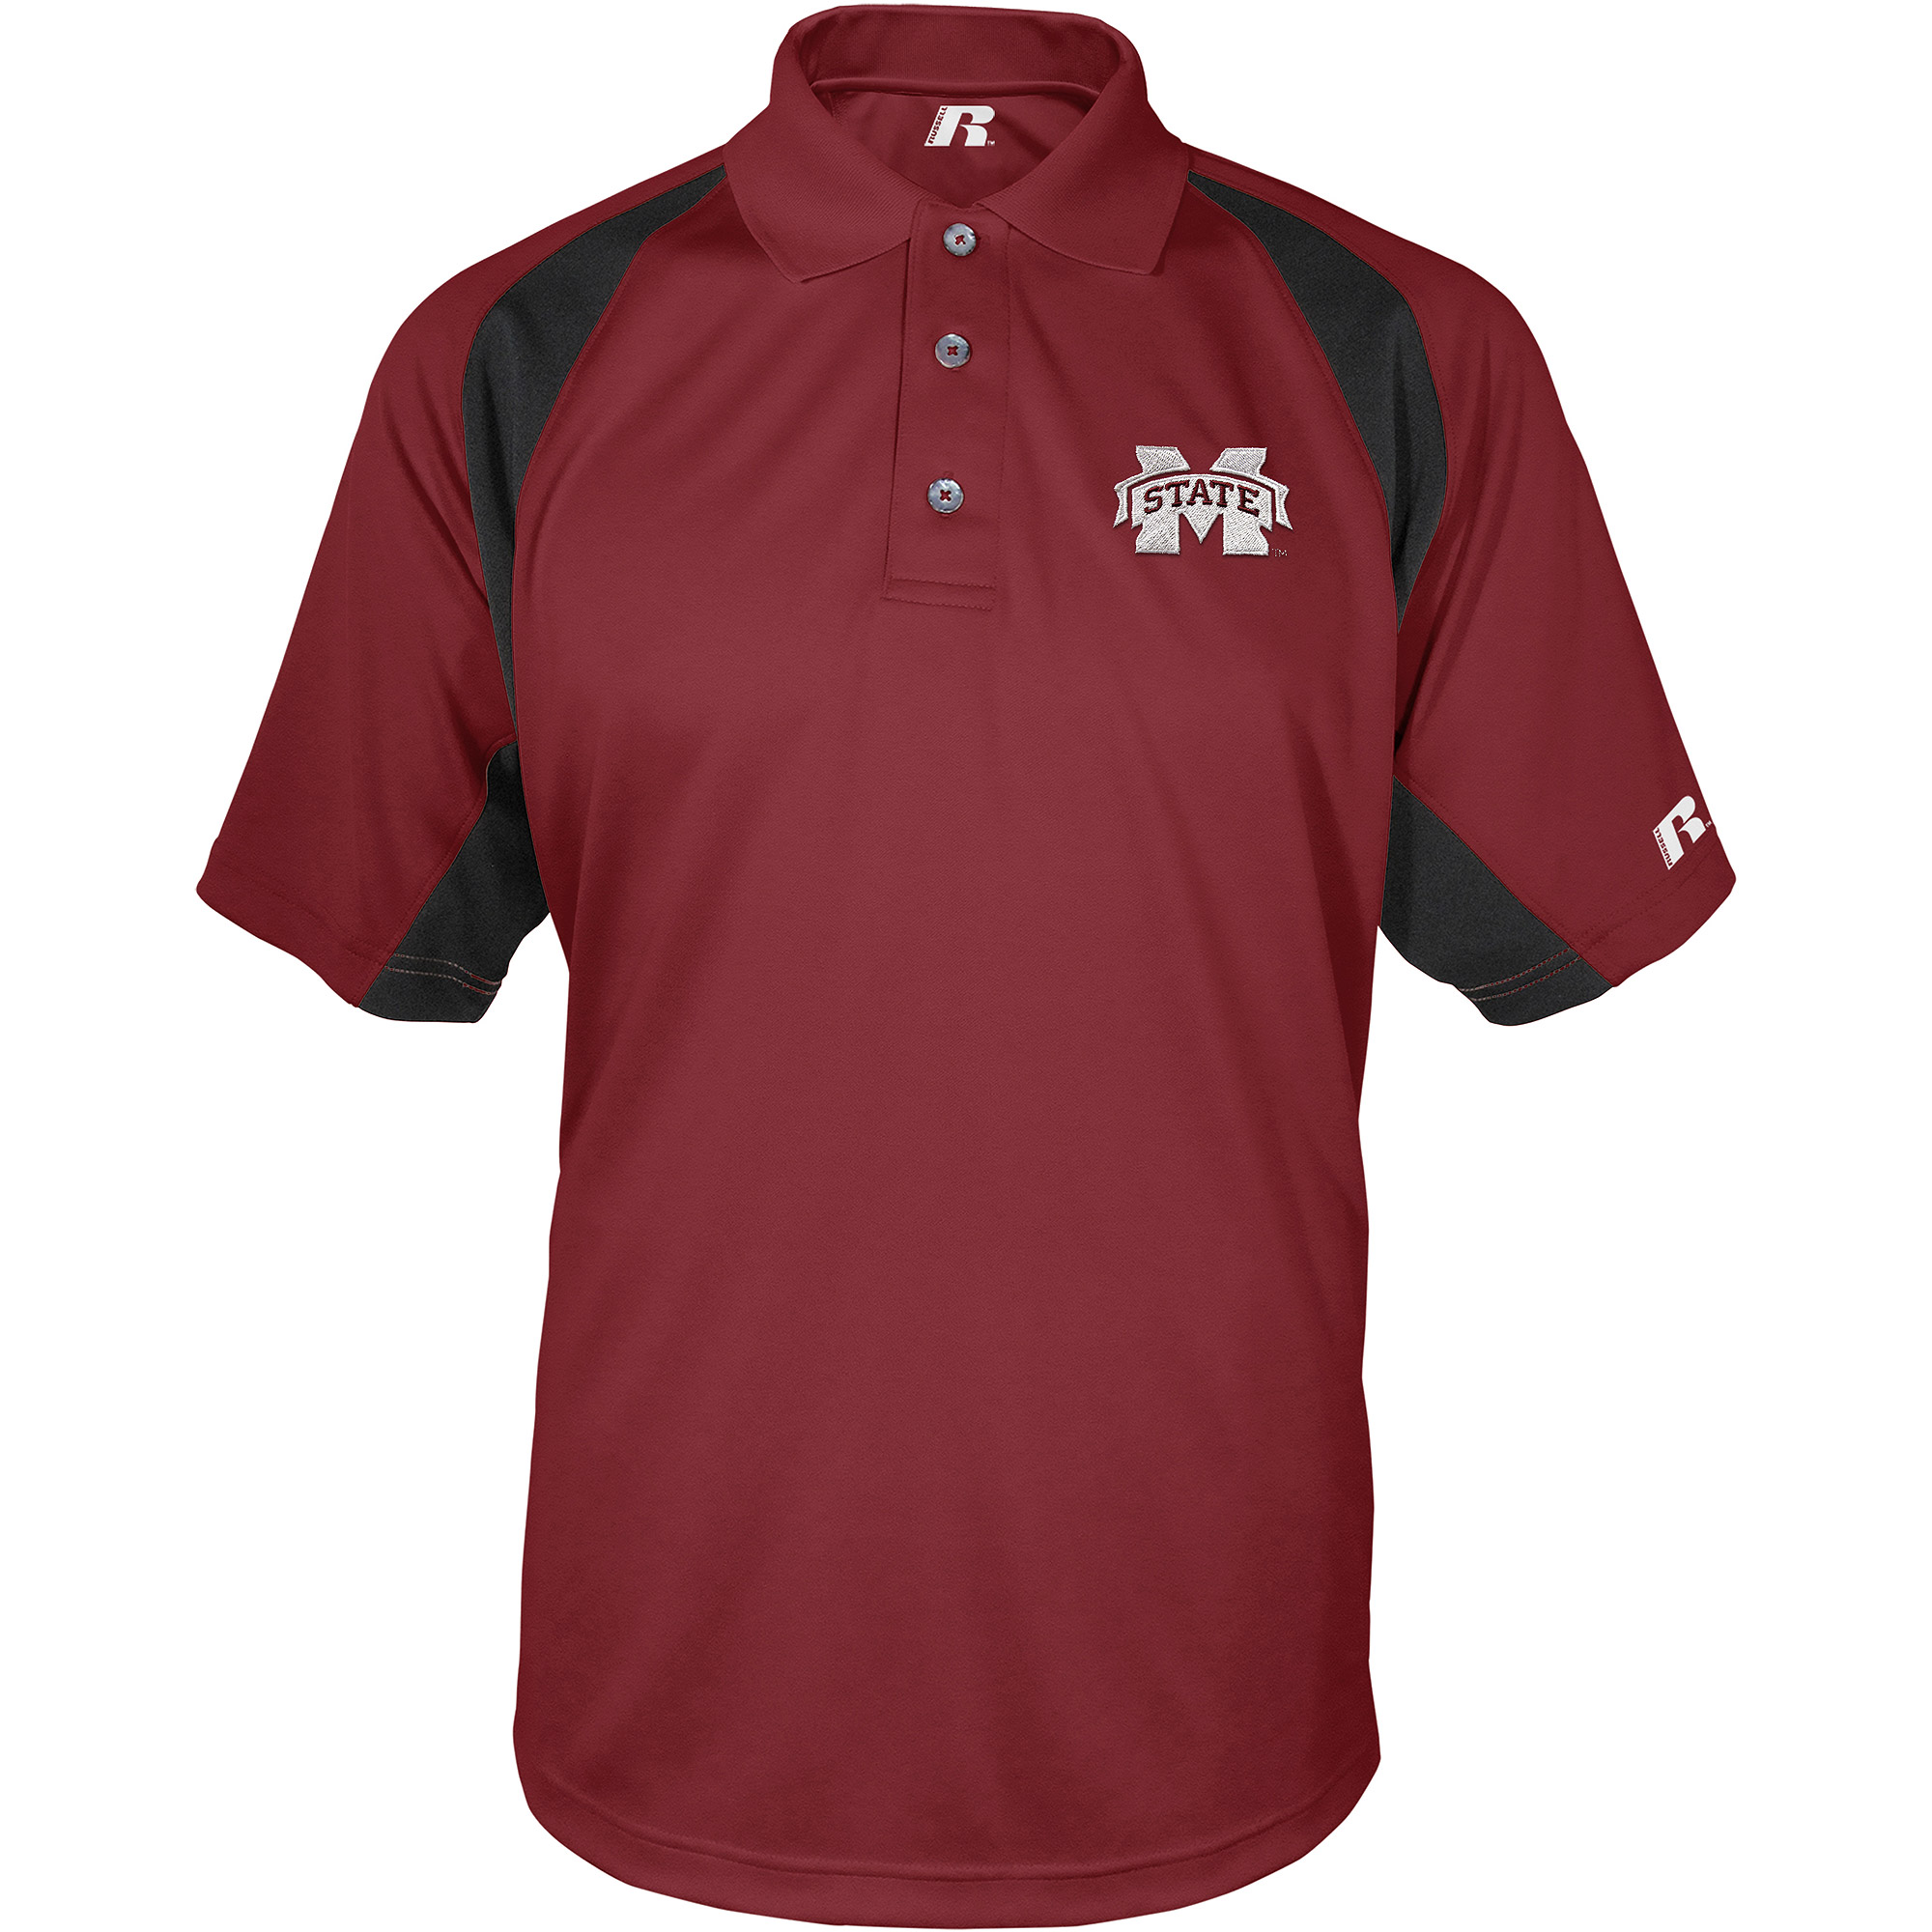 Russell NCAA Mississippi State Bulldogs, Men's Synthetic Polo